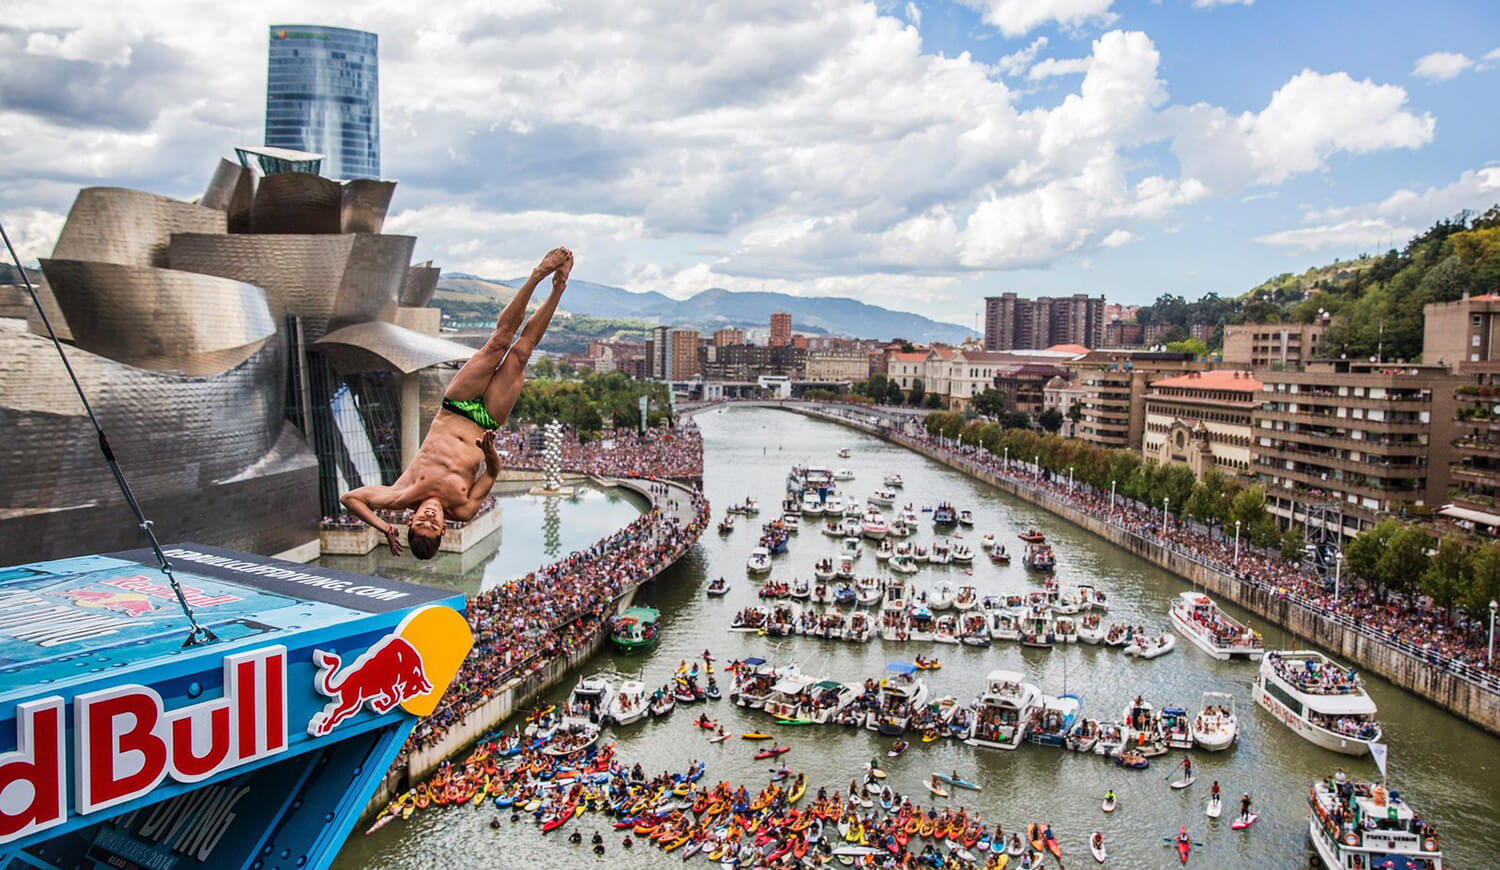 Redbull Cliff Diving Bilbao 2018